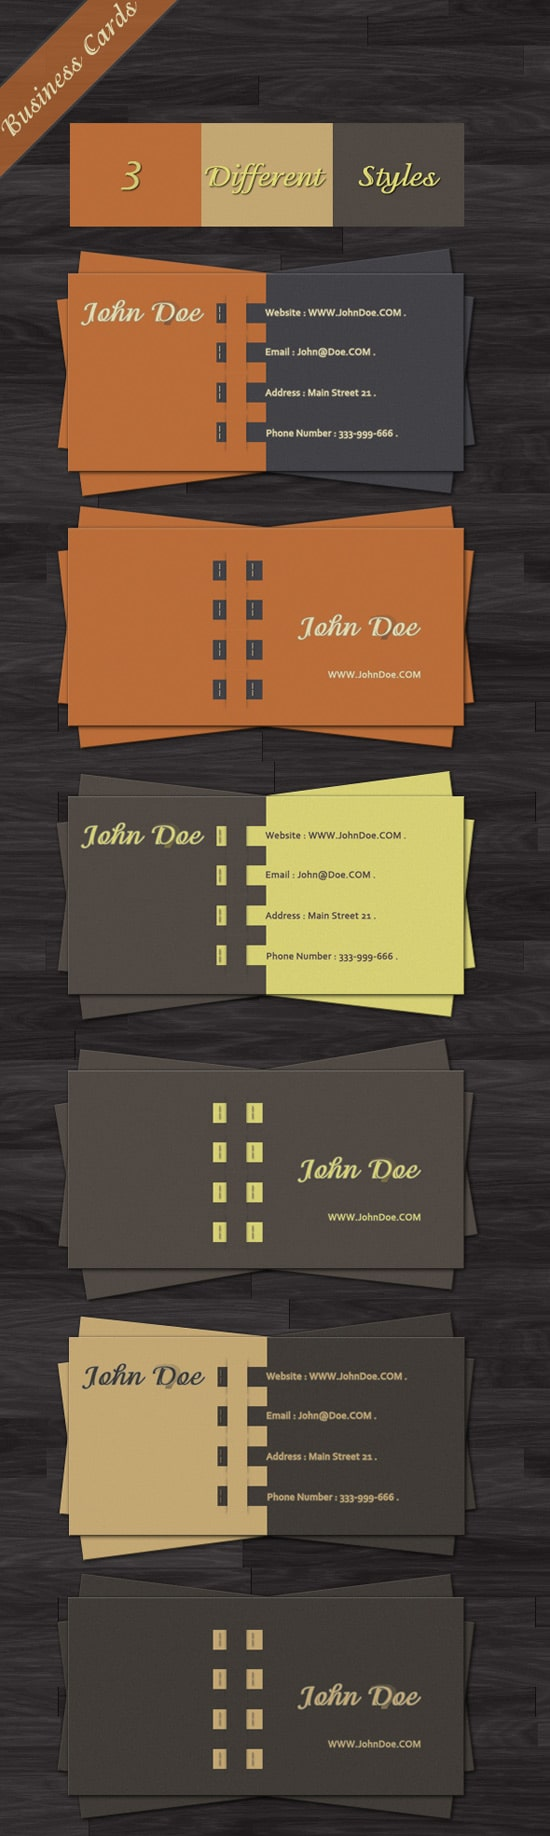 100 free business card templates designrfix business is business free psd vector business card flashek Image collections